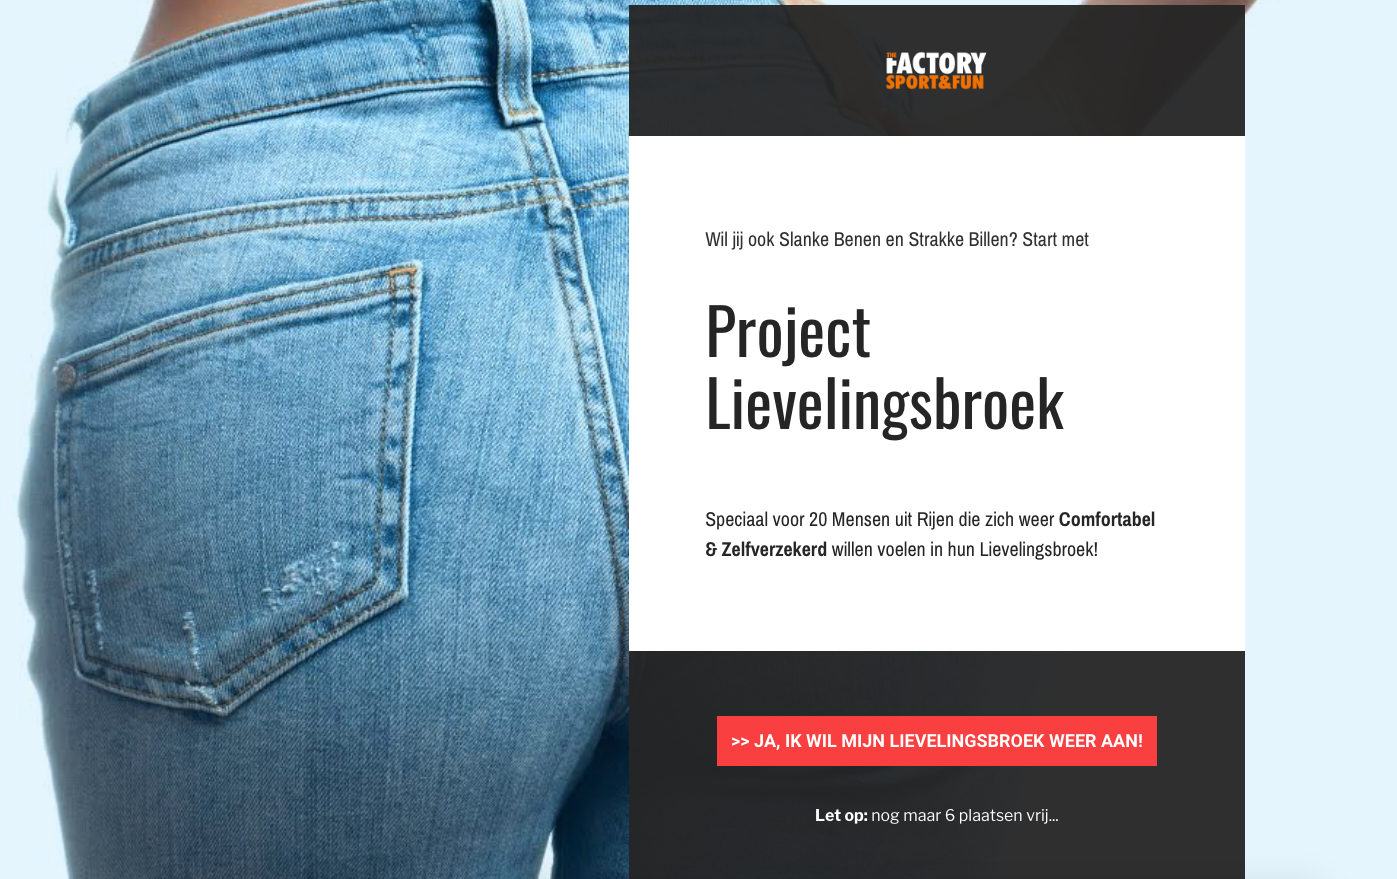 Project Lievelingsbroek bij The Factory